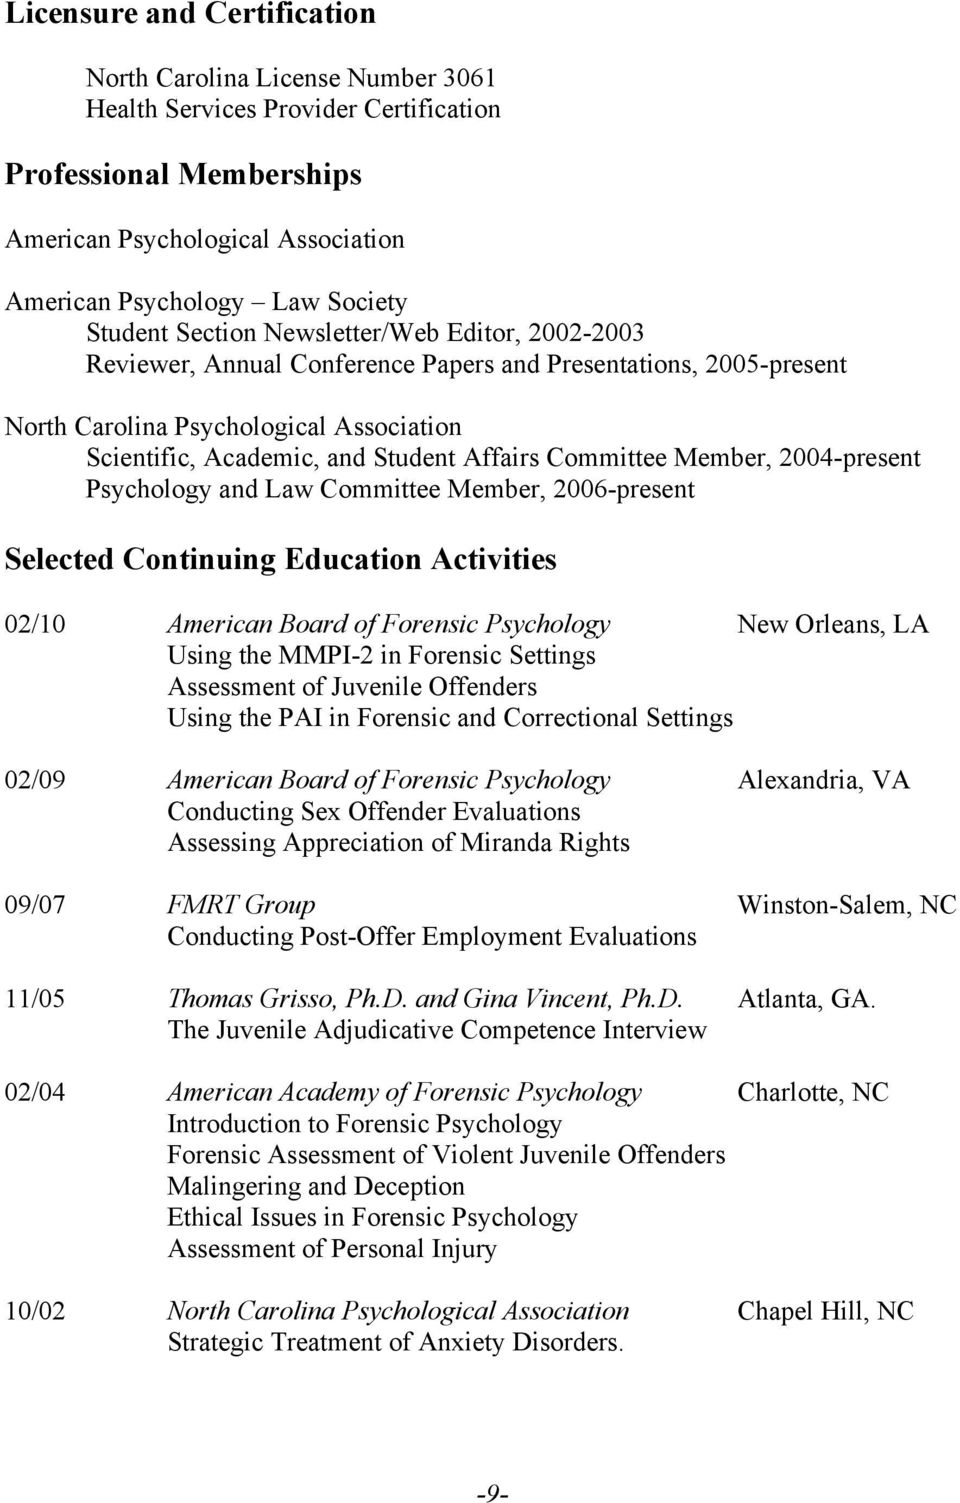 Committee Member, 2004-present Psychology and Law Committee Member, 2006-present Selected Continuing Education Activities 02/10 American Board of Forensic Psychology New Orleans, LA Using the MMPI-2